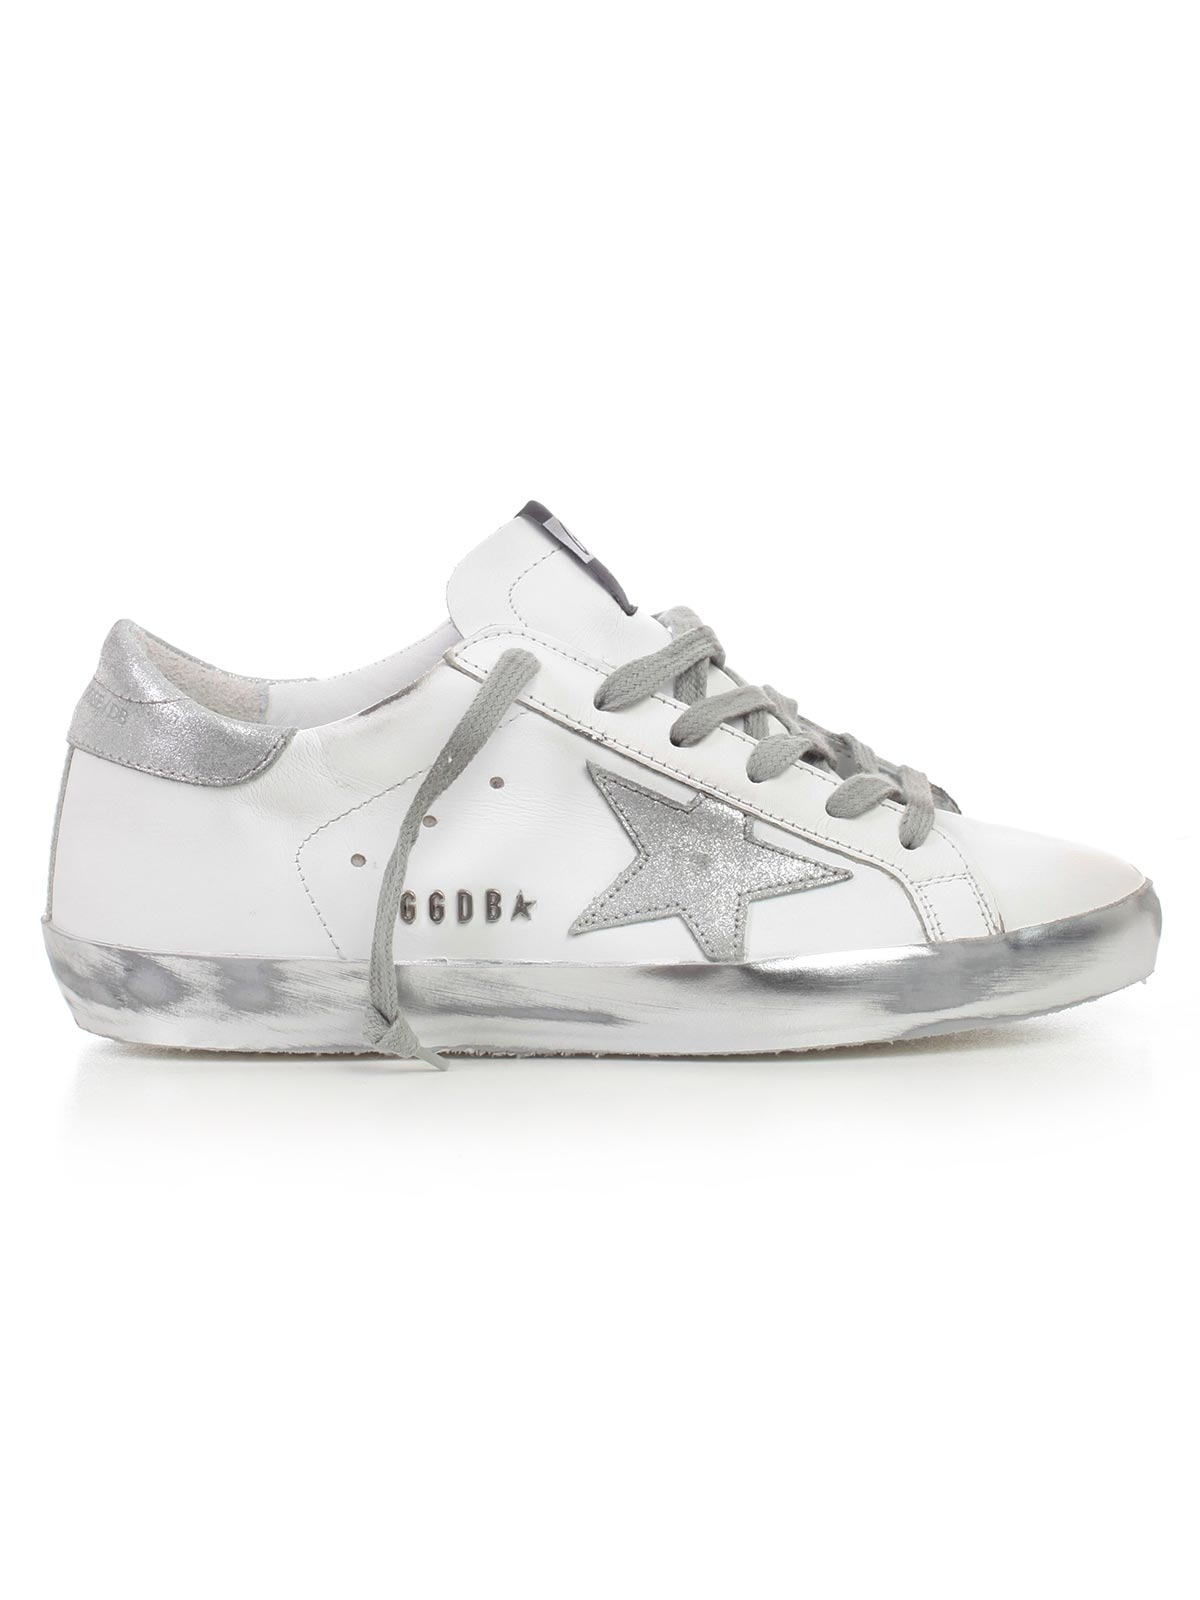 Golden Goose Deluxe Brand Shoes